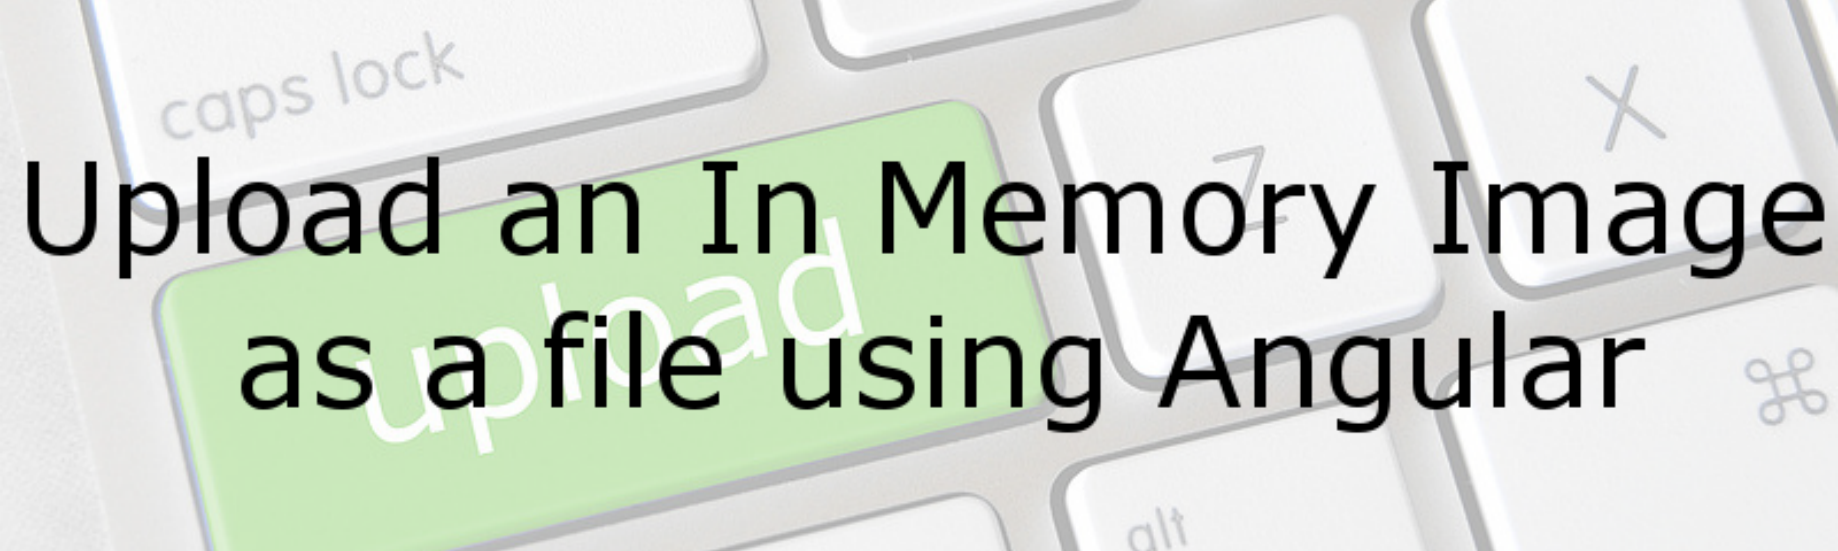 Upload an In Memory Image as a File using Angular - Dave